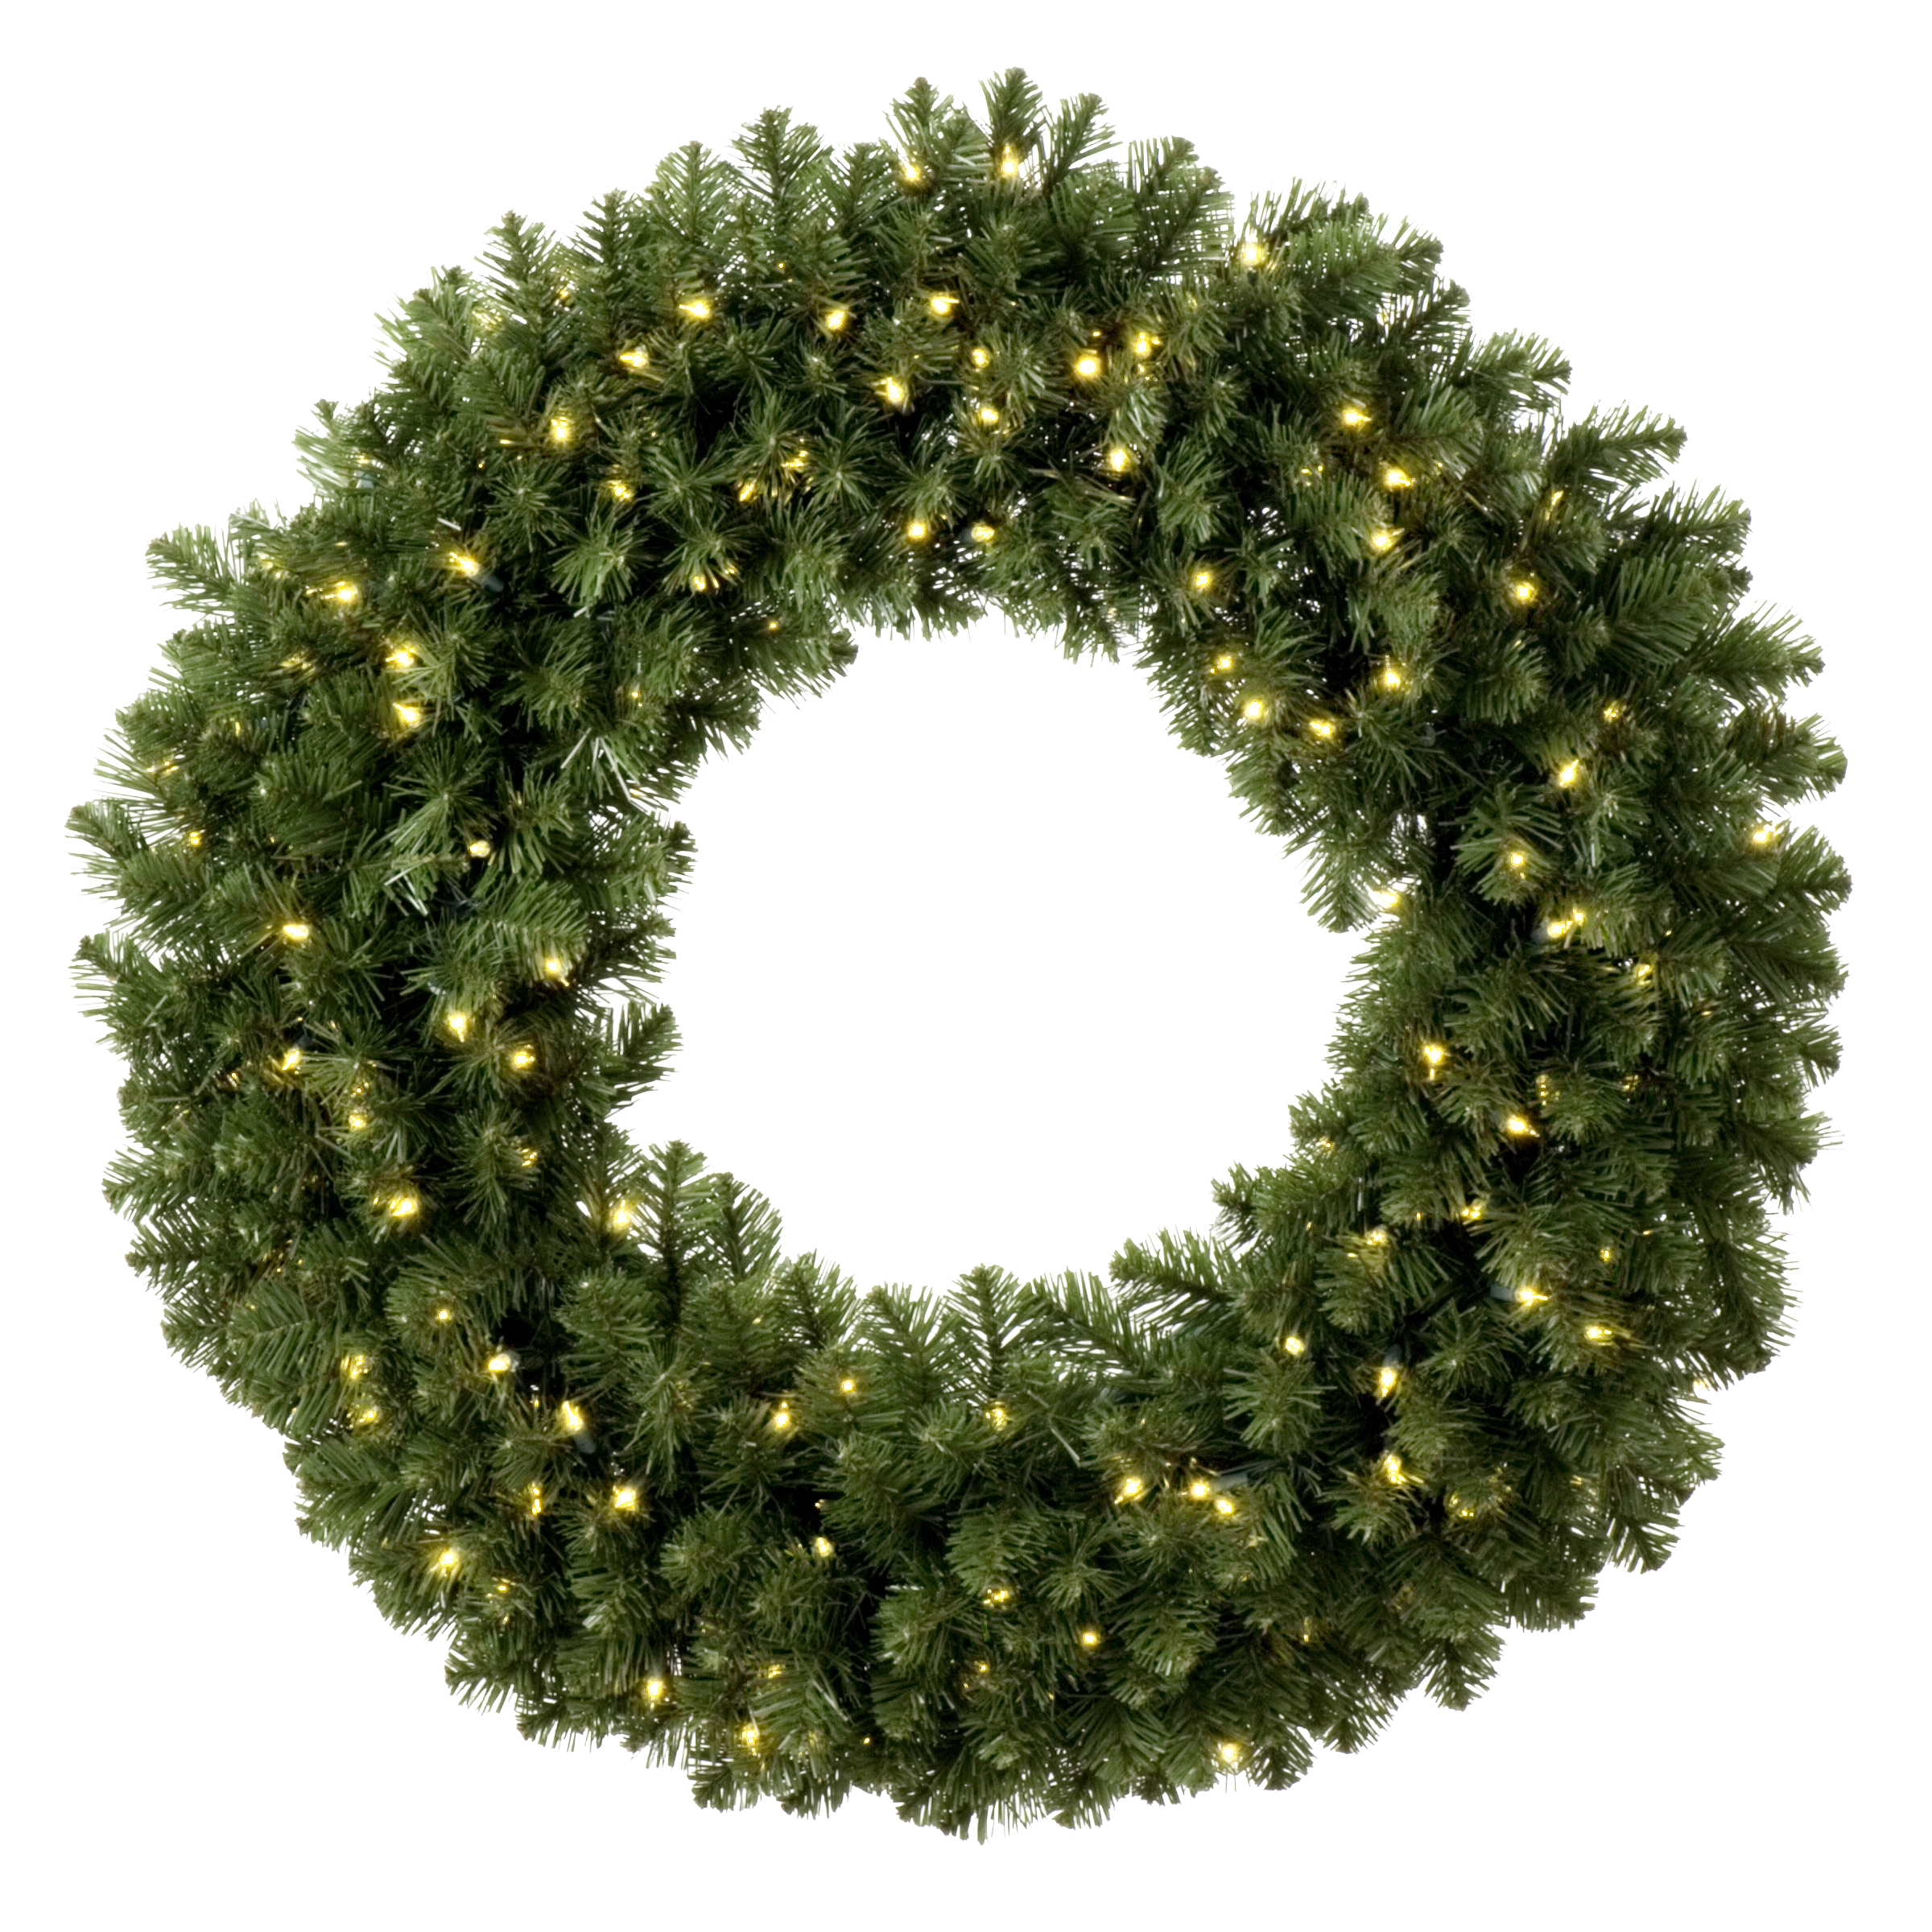 Christmas reef png. Wreath photo mart